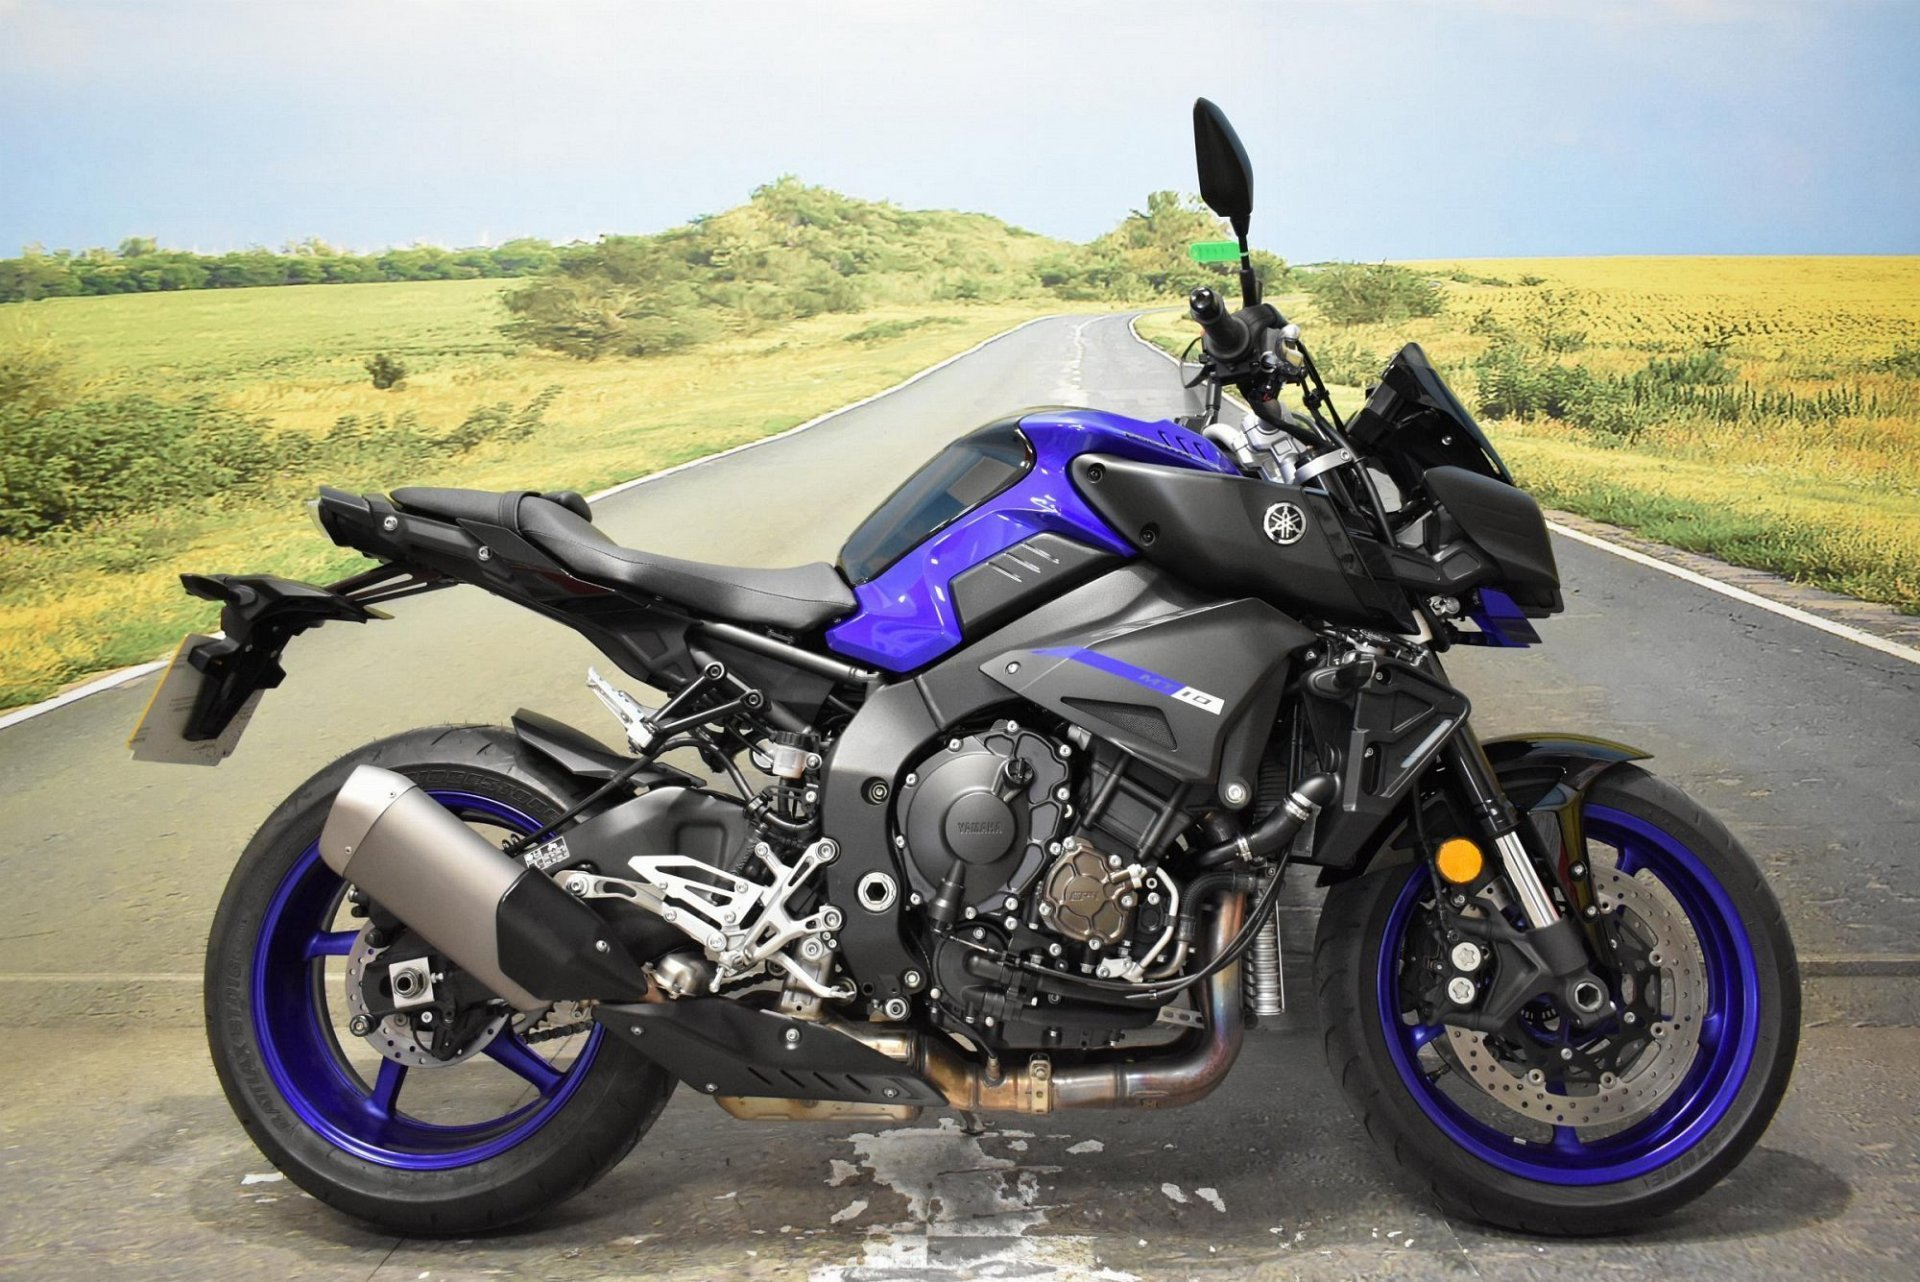 2019 Yamaha MT-10 for sale in Derbyshire